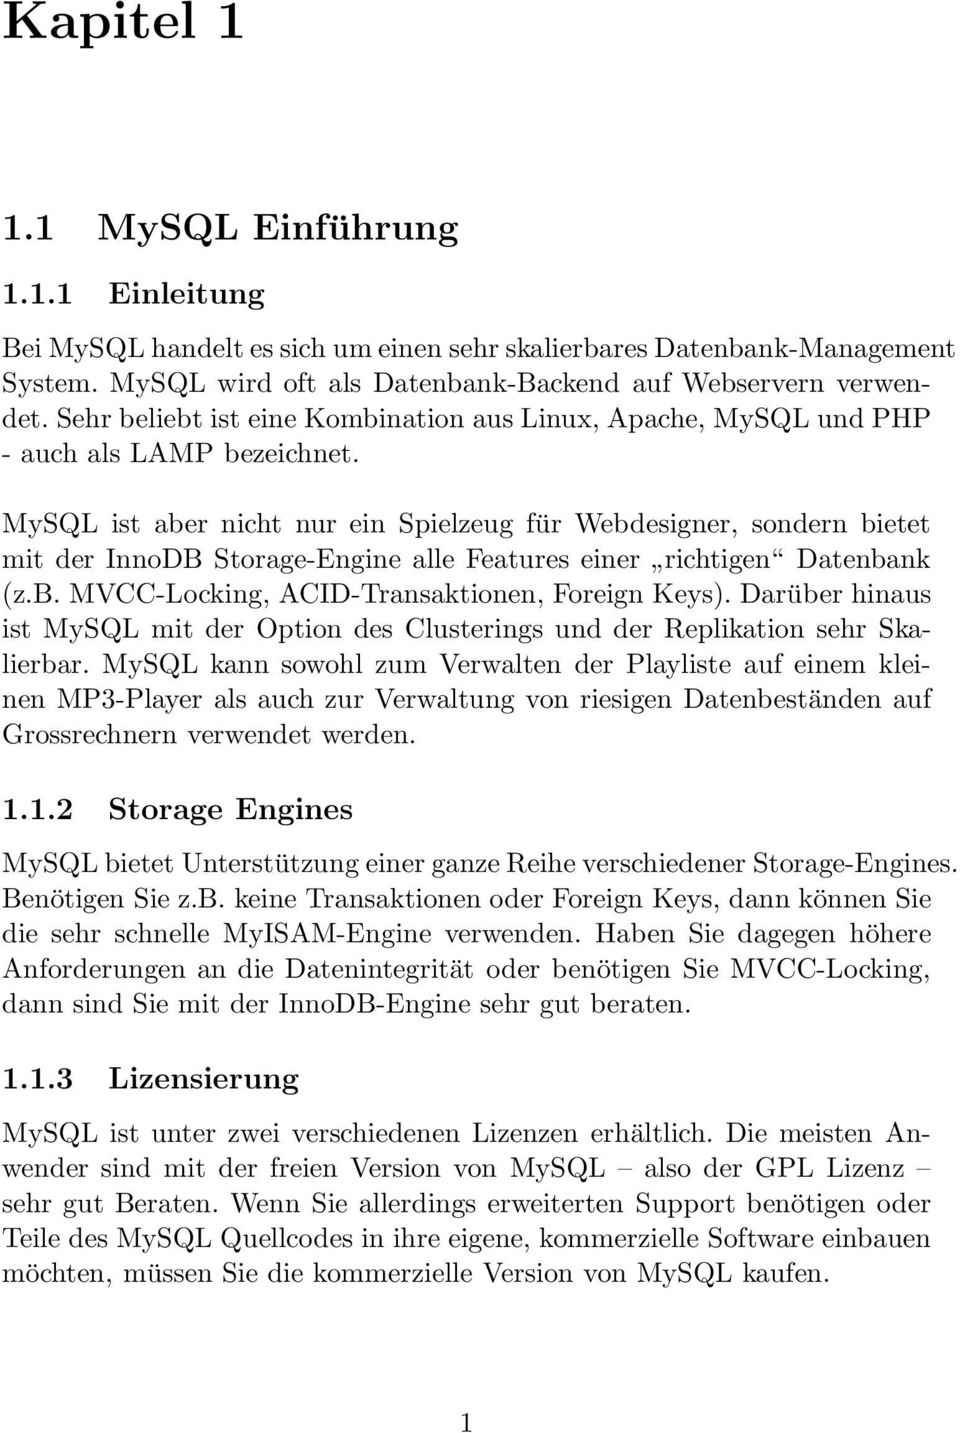 MySQL ist aber nicht nur ein Spielzeug für Webdesigner, sondern bietet mit der InnoDB Storage-Engine alle Features einer richtigen Datenbank (z.b. MVCC-Locking, ACID-Transaktionen, Foreign Keys).